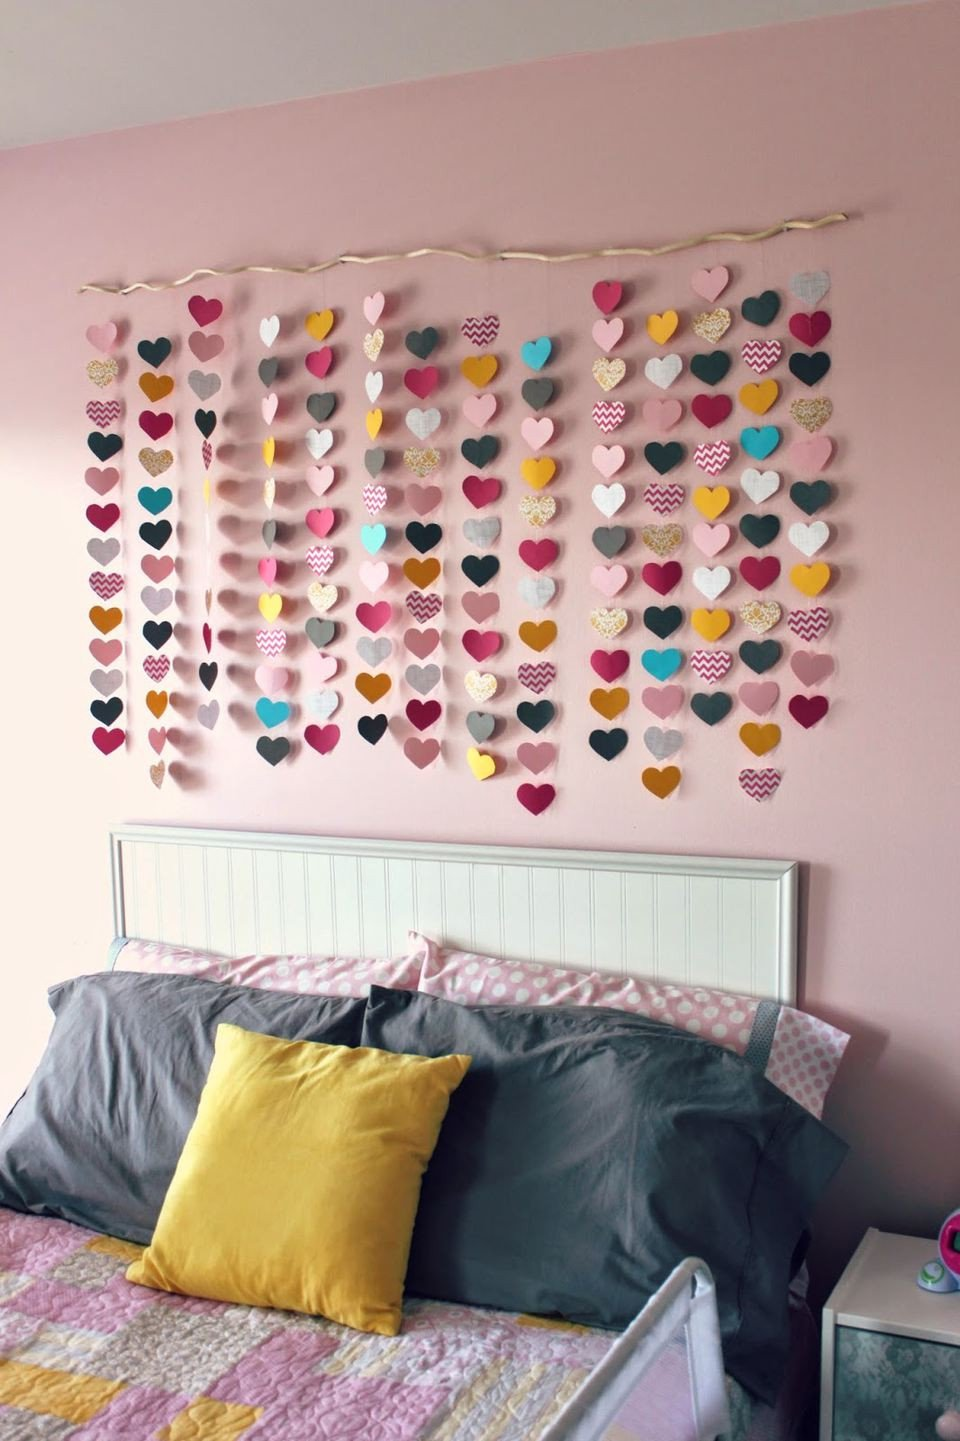 Homemade Wall Decoration Ideas for Bedroom Awesome 24 Wall Decor Ideas for Girls Rooms